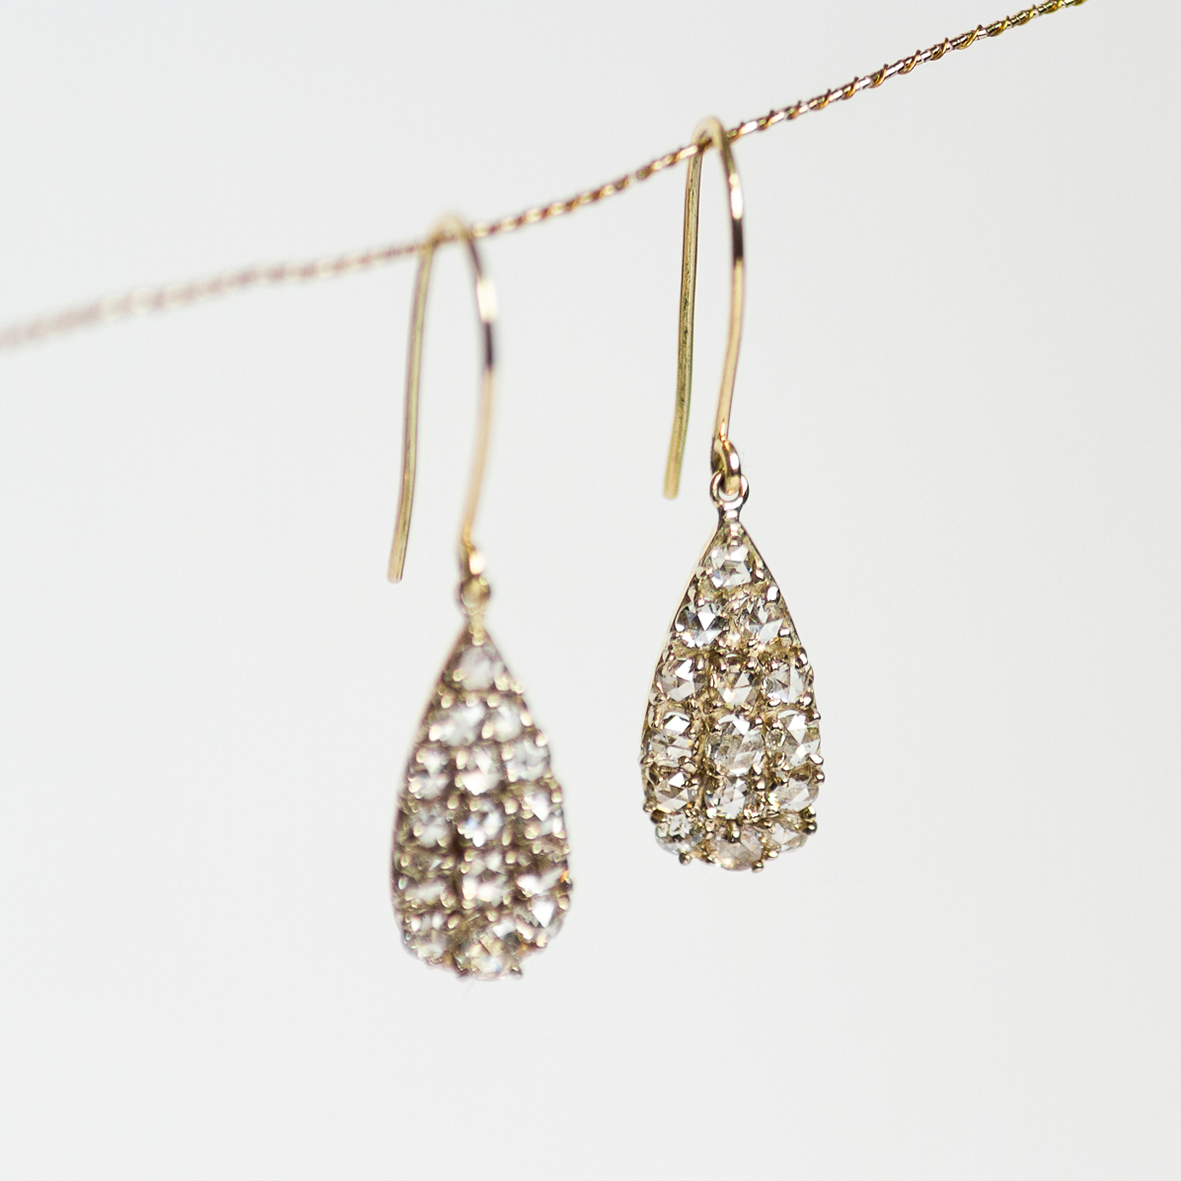 5. OONA_lotus_ficha2_drop rose-cut diamond earrings